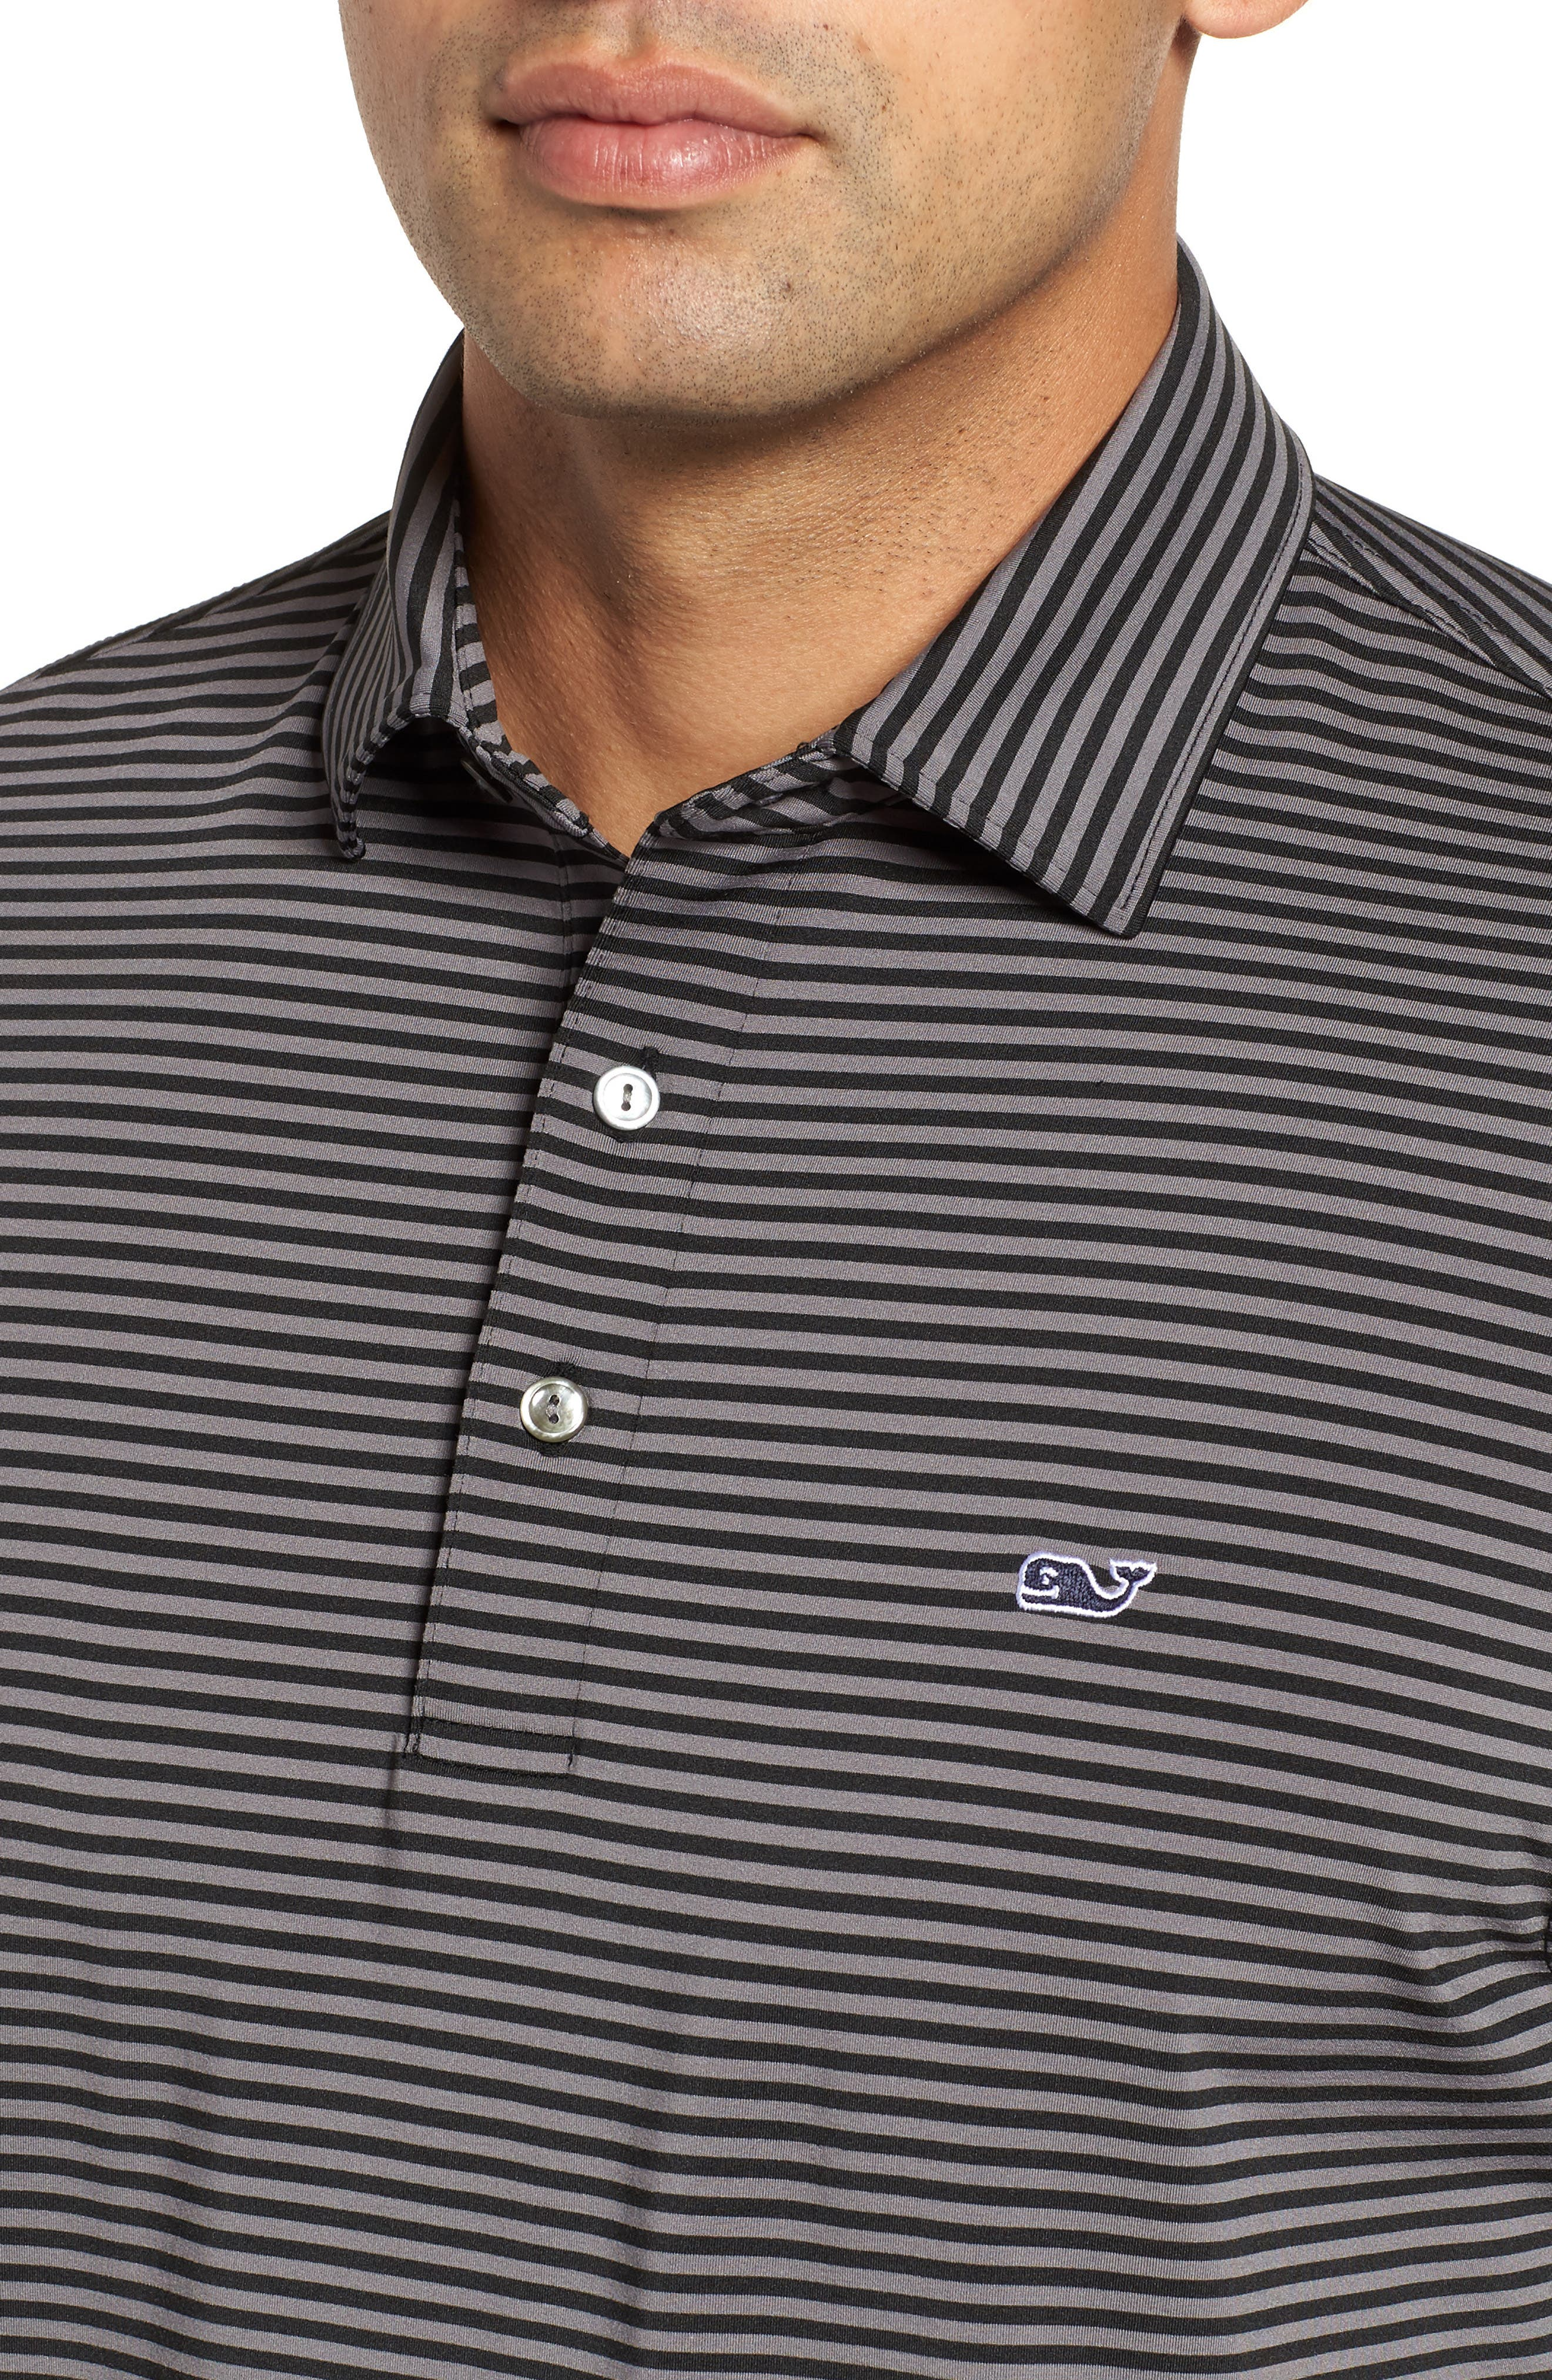 Kennedy Stripe Golf Polo,                             Alternate thumbnail 4, color,                             002